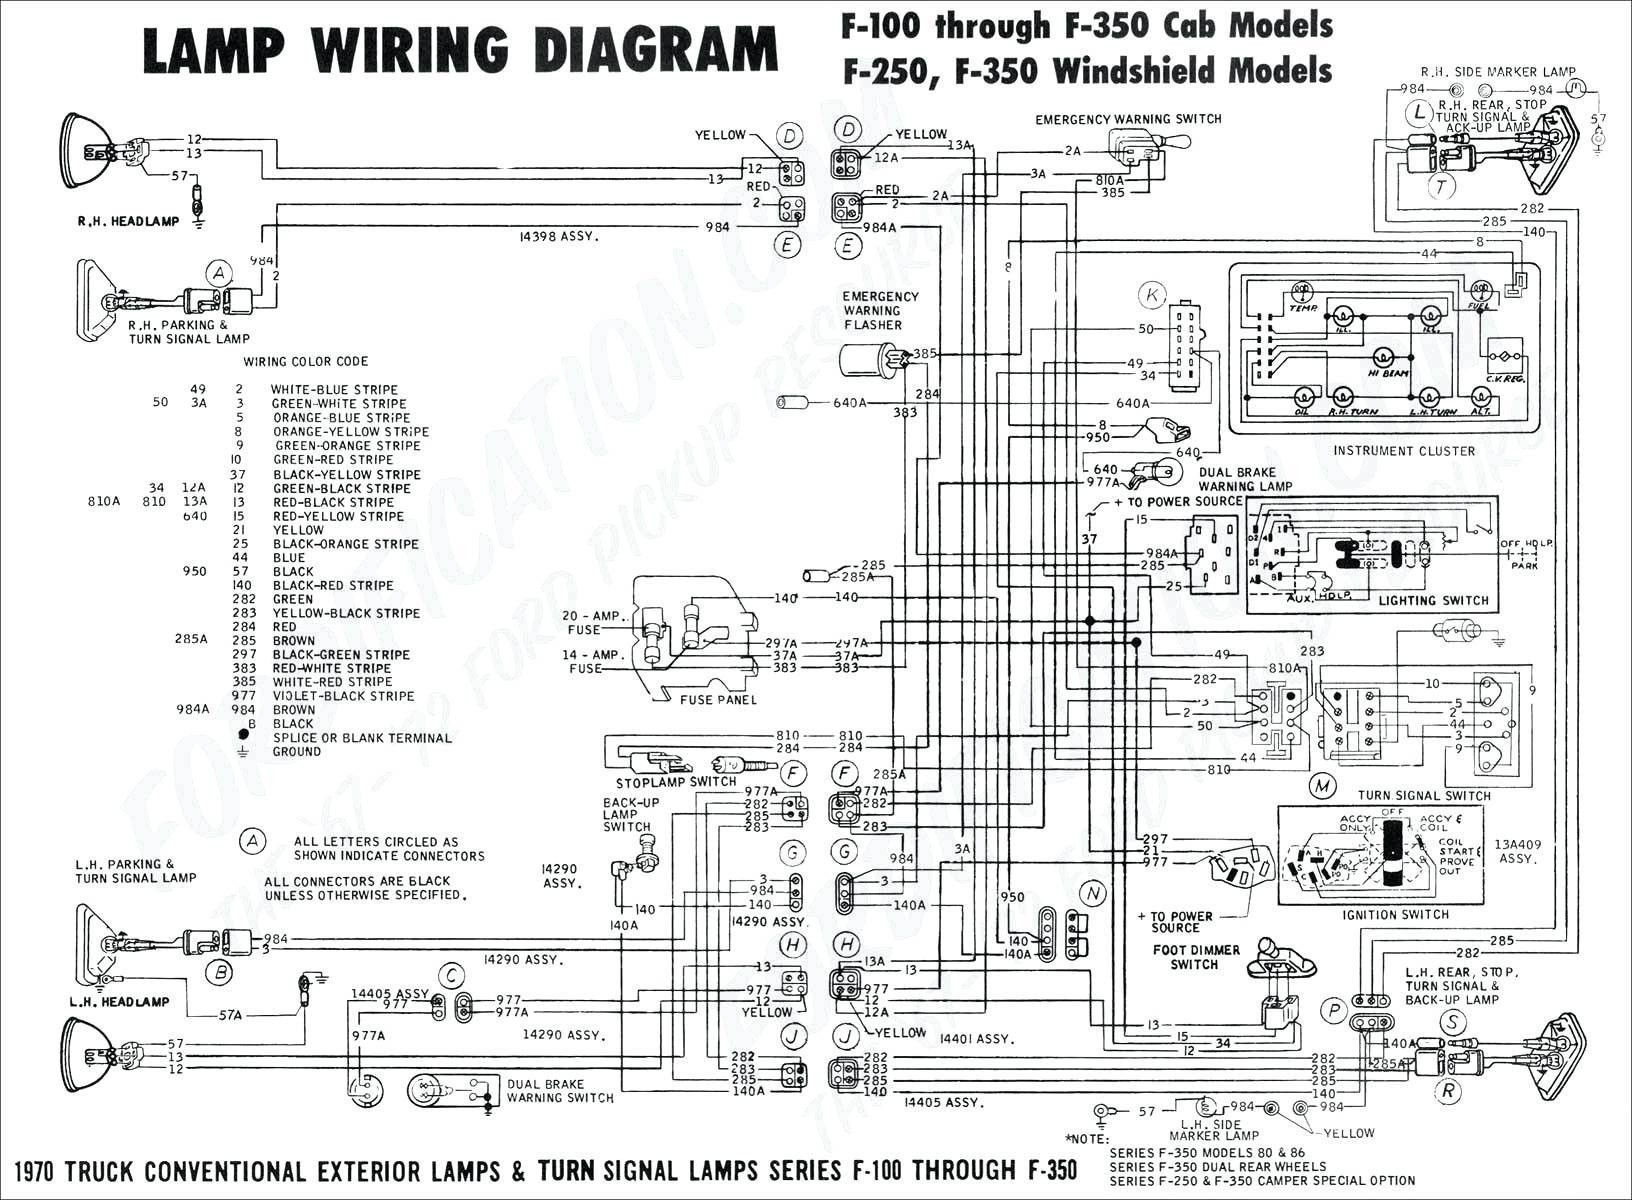 Clarion Dxz645mp Wiring Diagram - Wiring Diagrams Reset